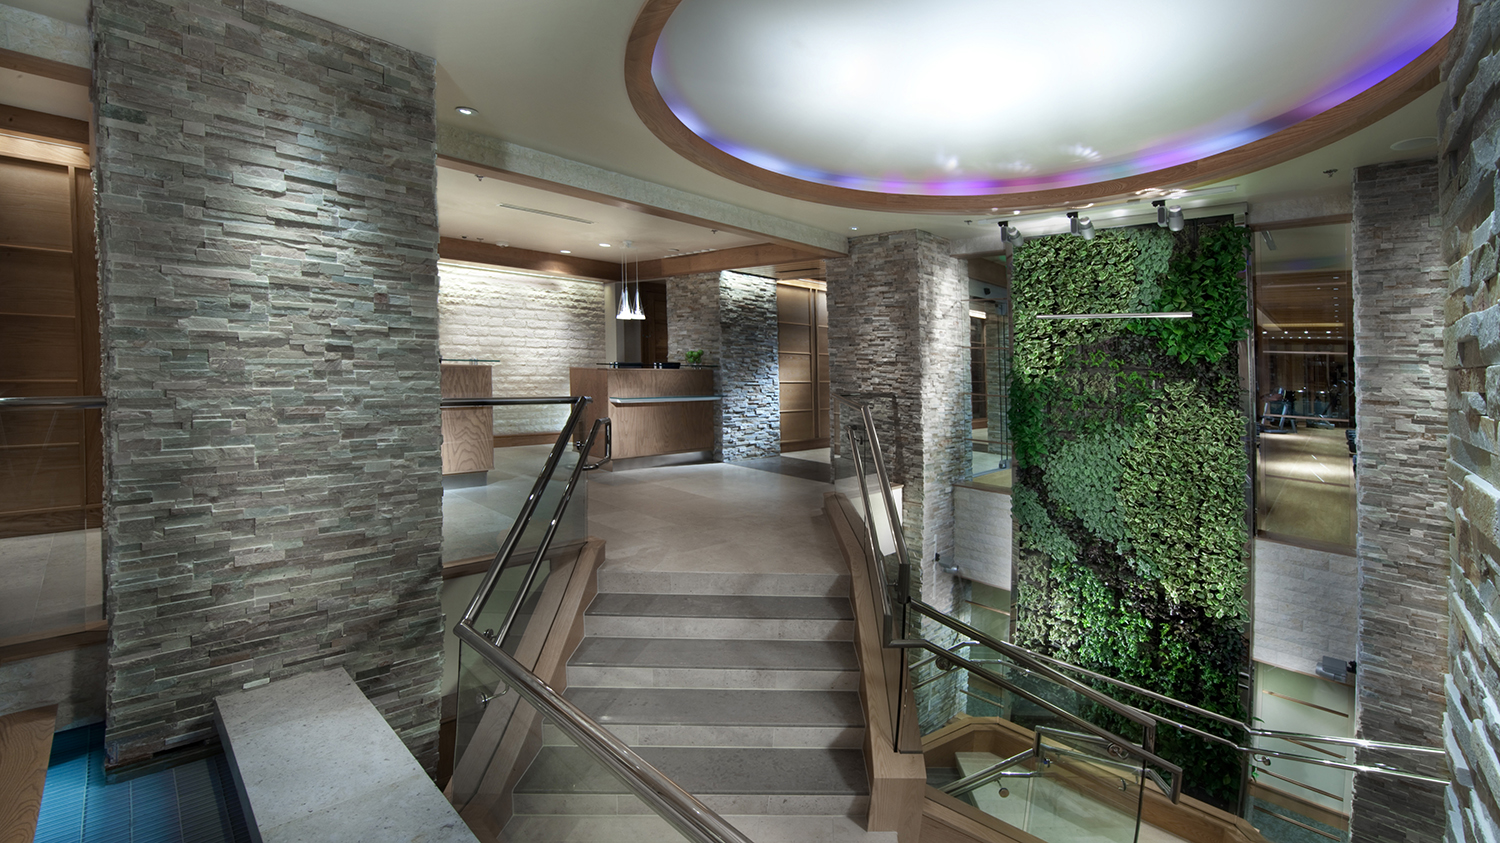 The entrance to the spa's reception area.